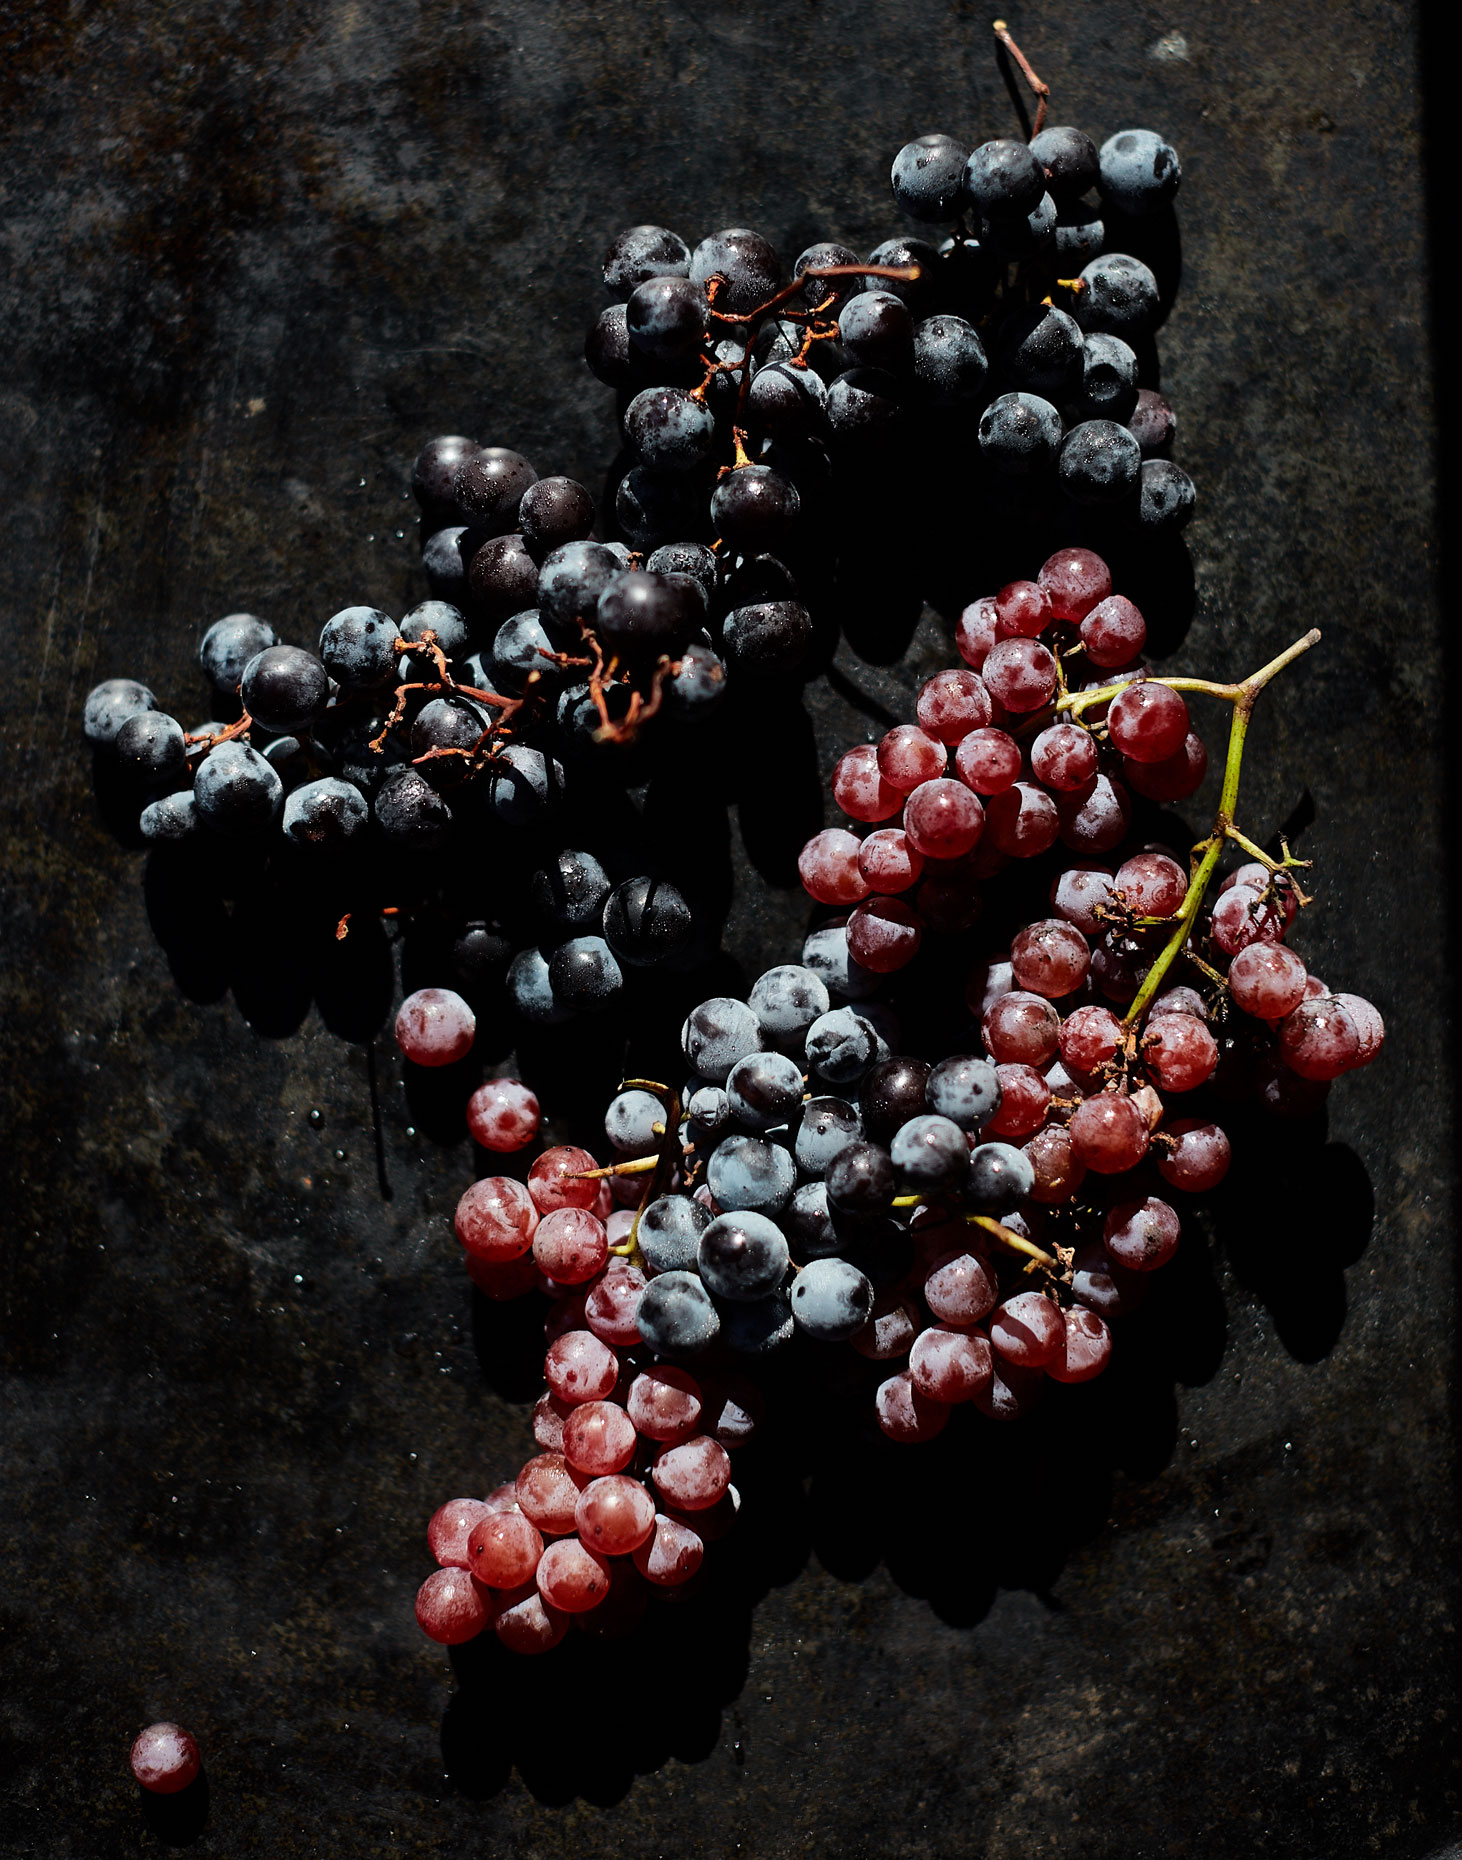 20161019_EyeSwoon_S120_FALL_Grapes_0066